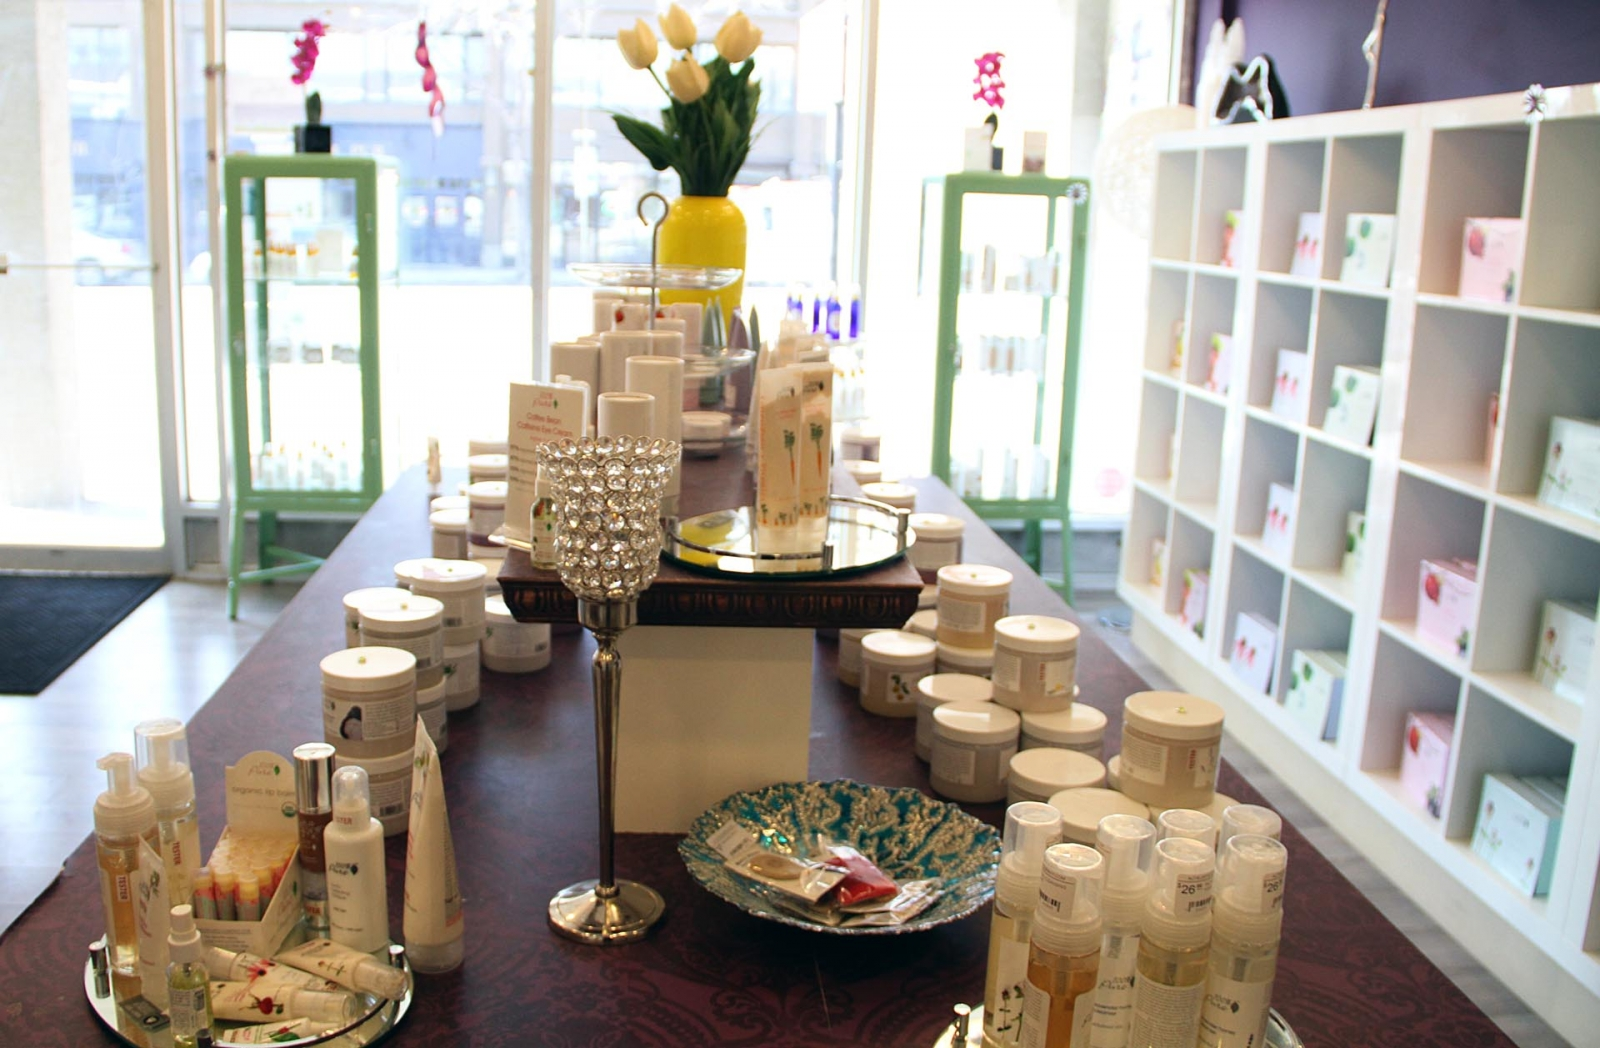 A wide variety of organic and natural skin care and cosmetics brands can be found at Altruistic, including celeb favourite 100% Pure.